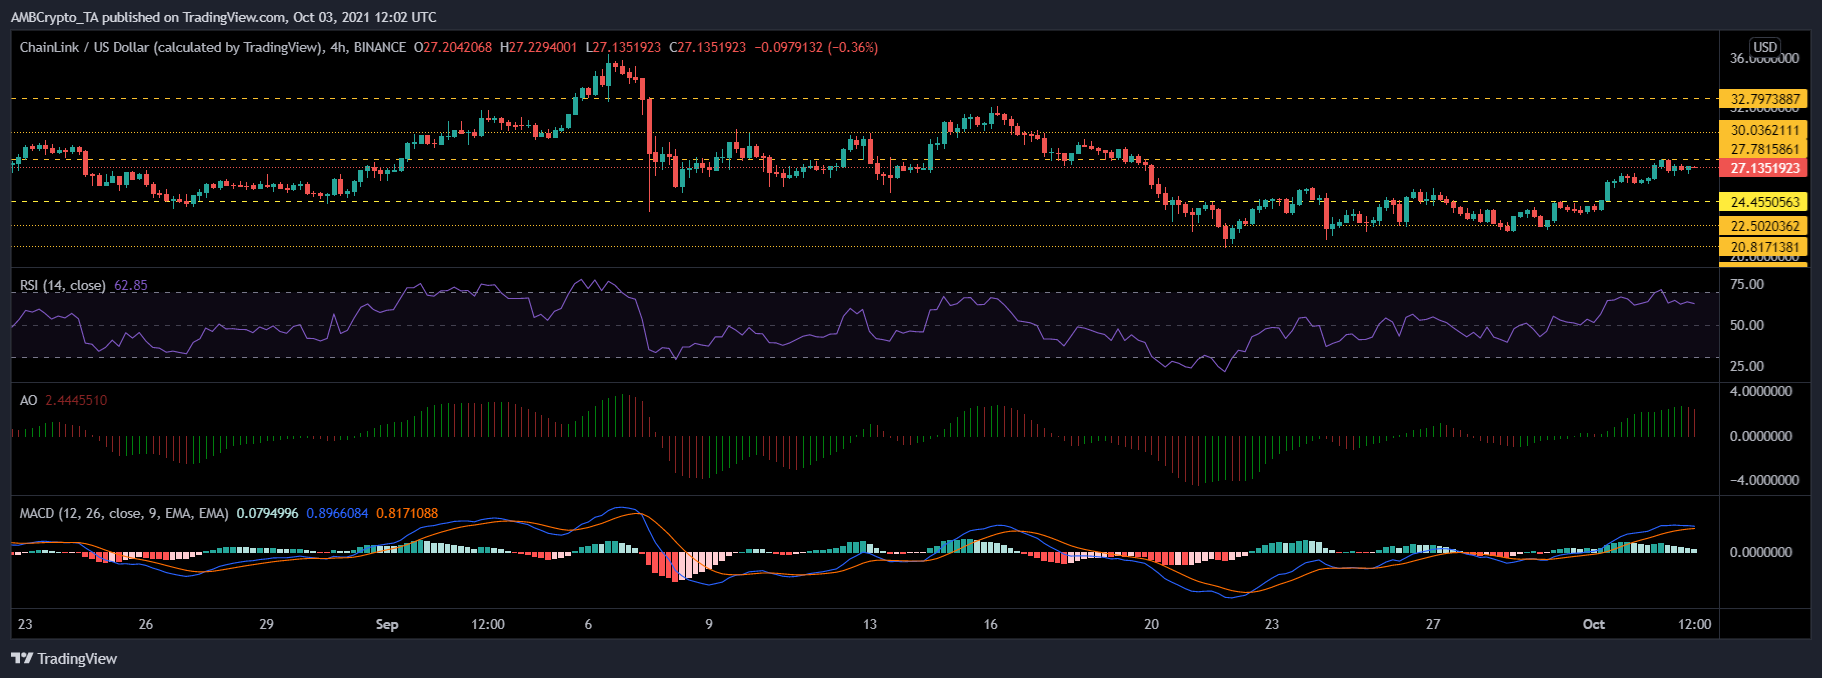 Cardano, Chainlink and EOS Price Analysis: 03 October